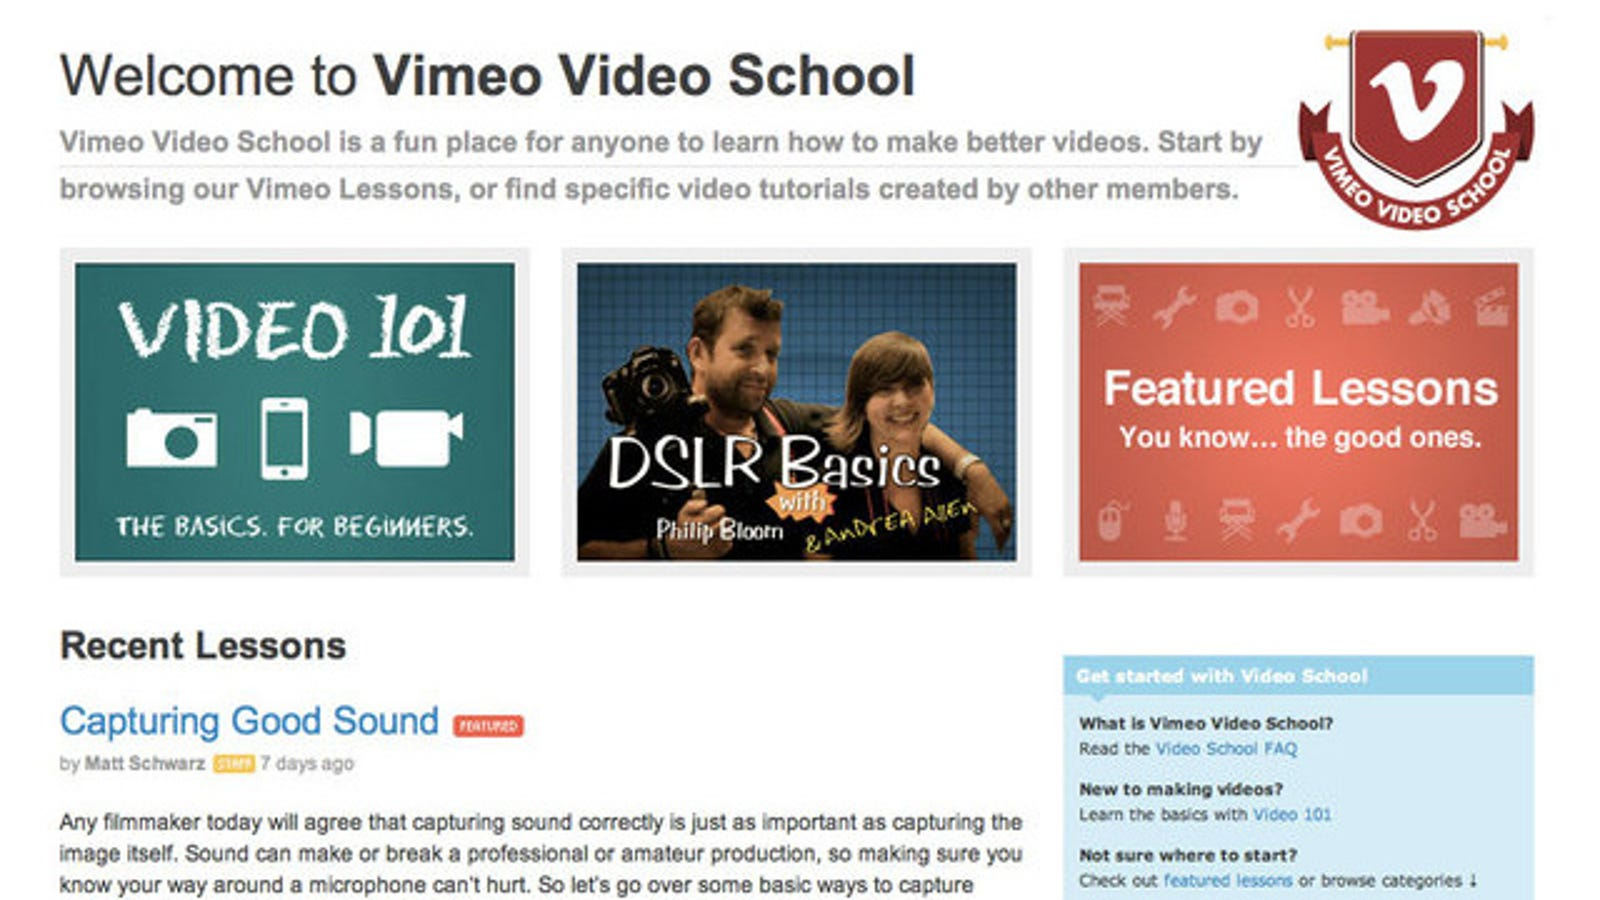 Vimeo Video School Offers Free Tutorials to Help Improve ...